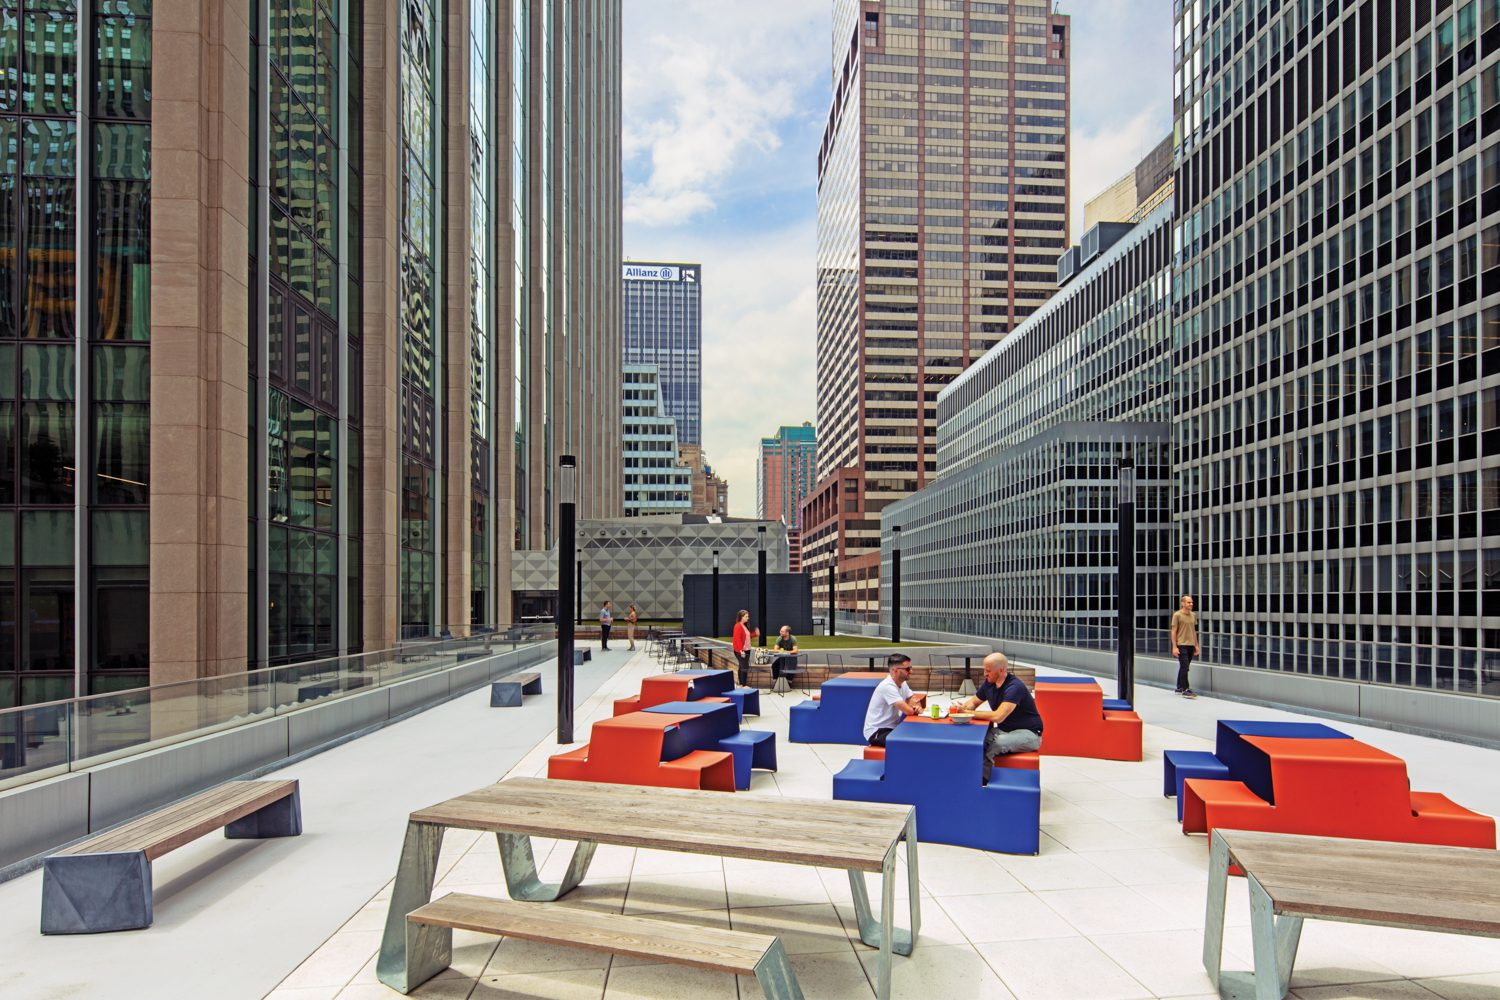 Folded aluminum Picnik tables by Extremis add color to the terrace.